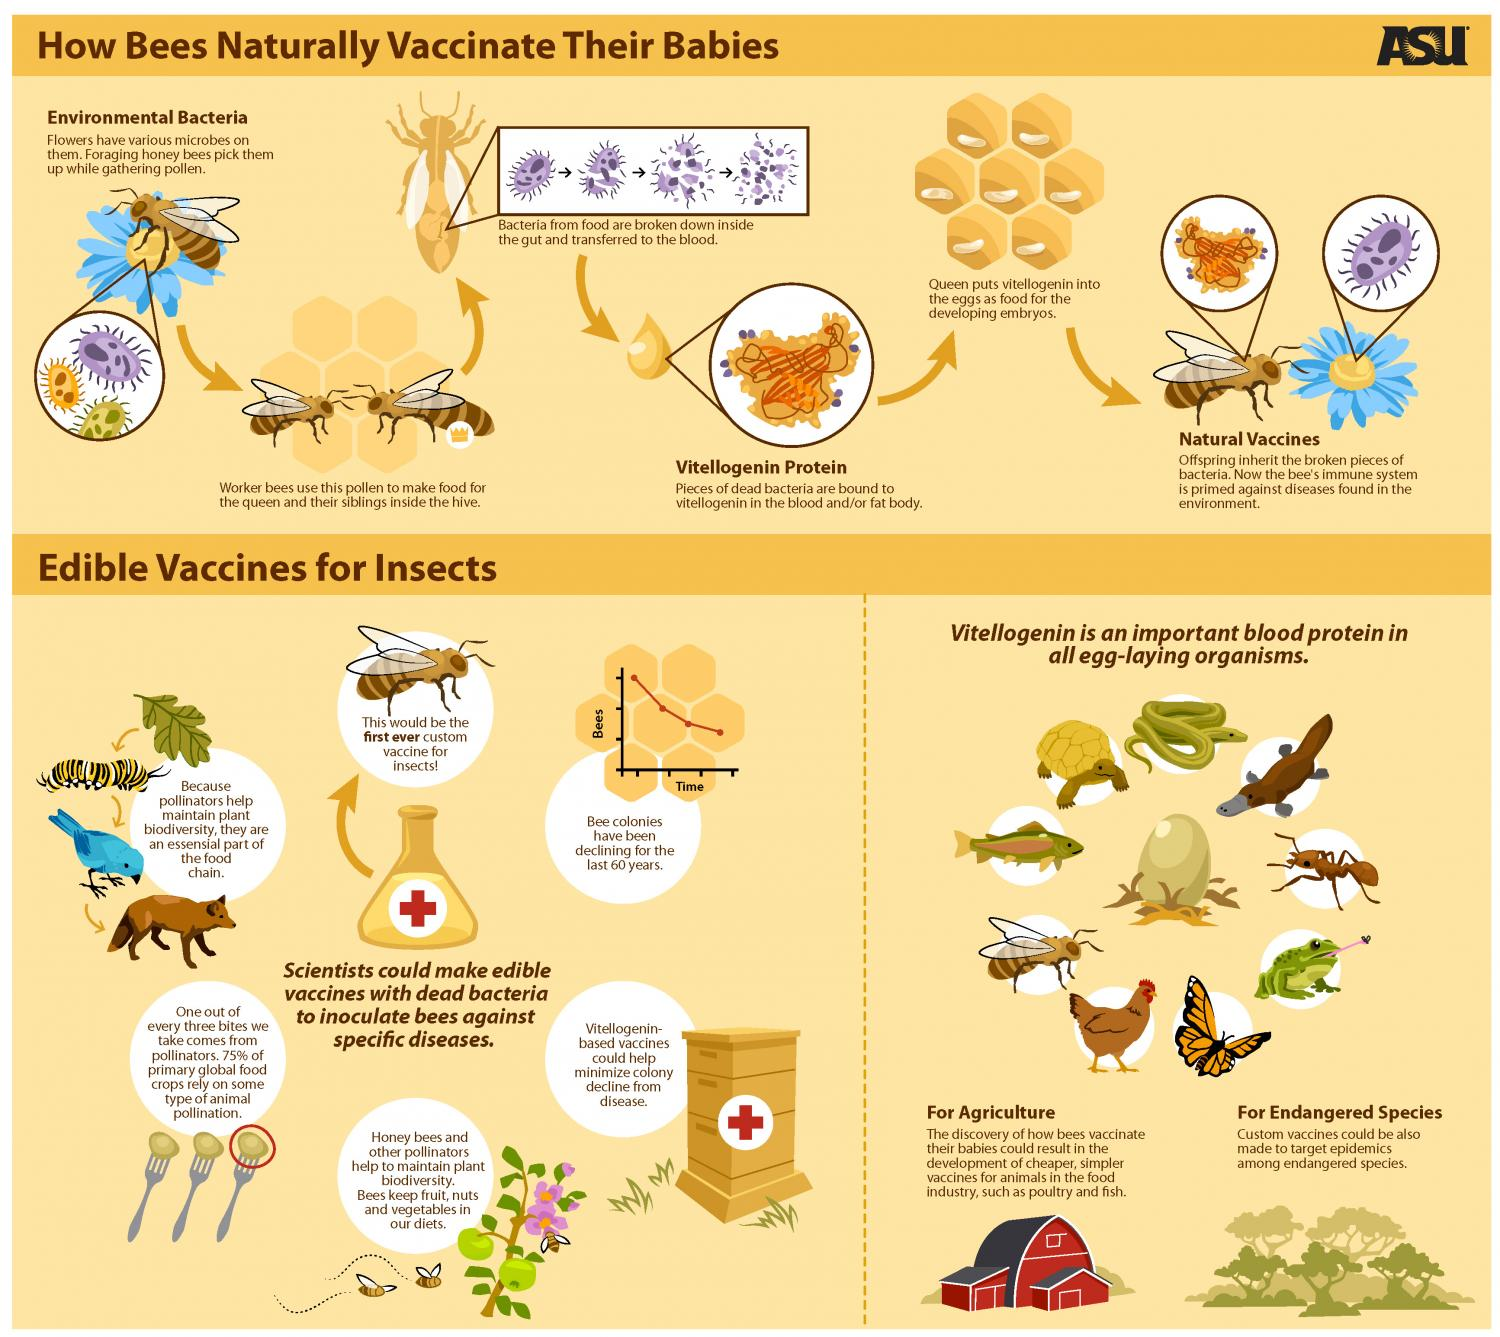 bees naturally vaccinate their babies